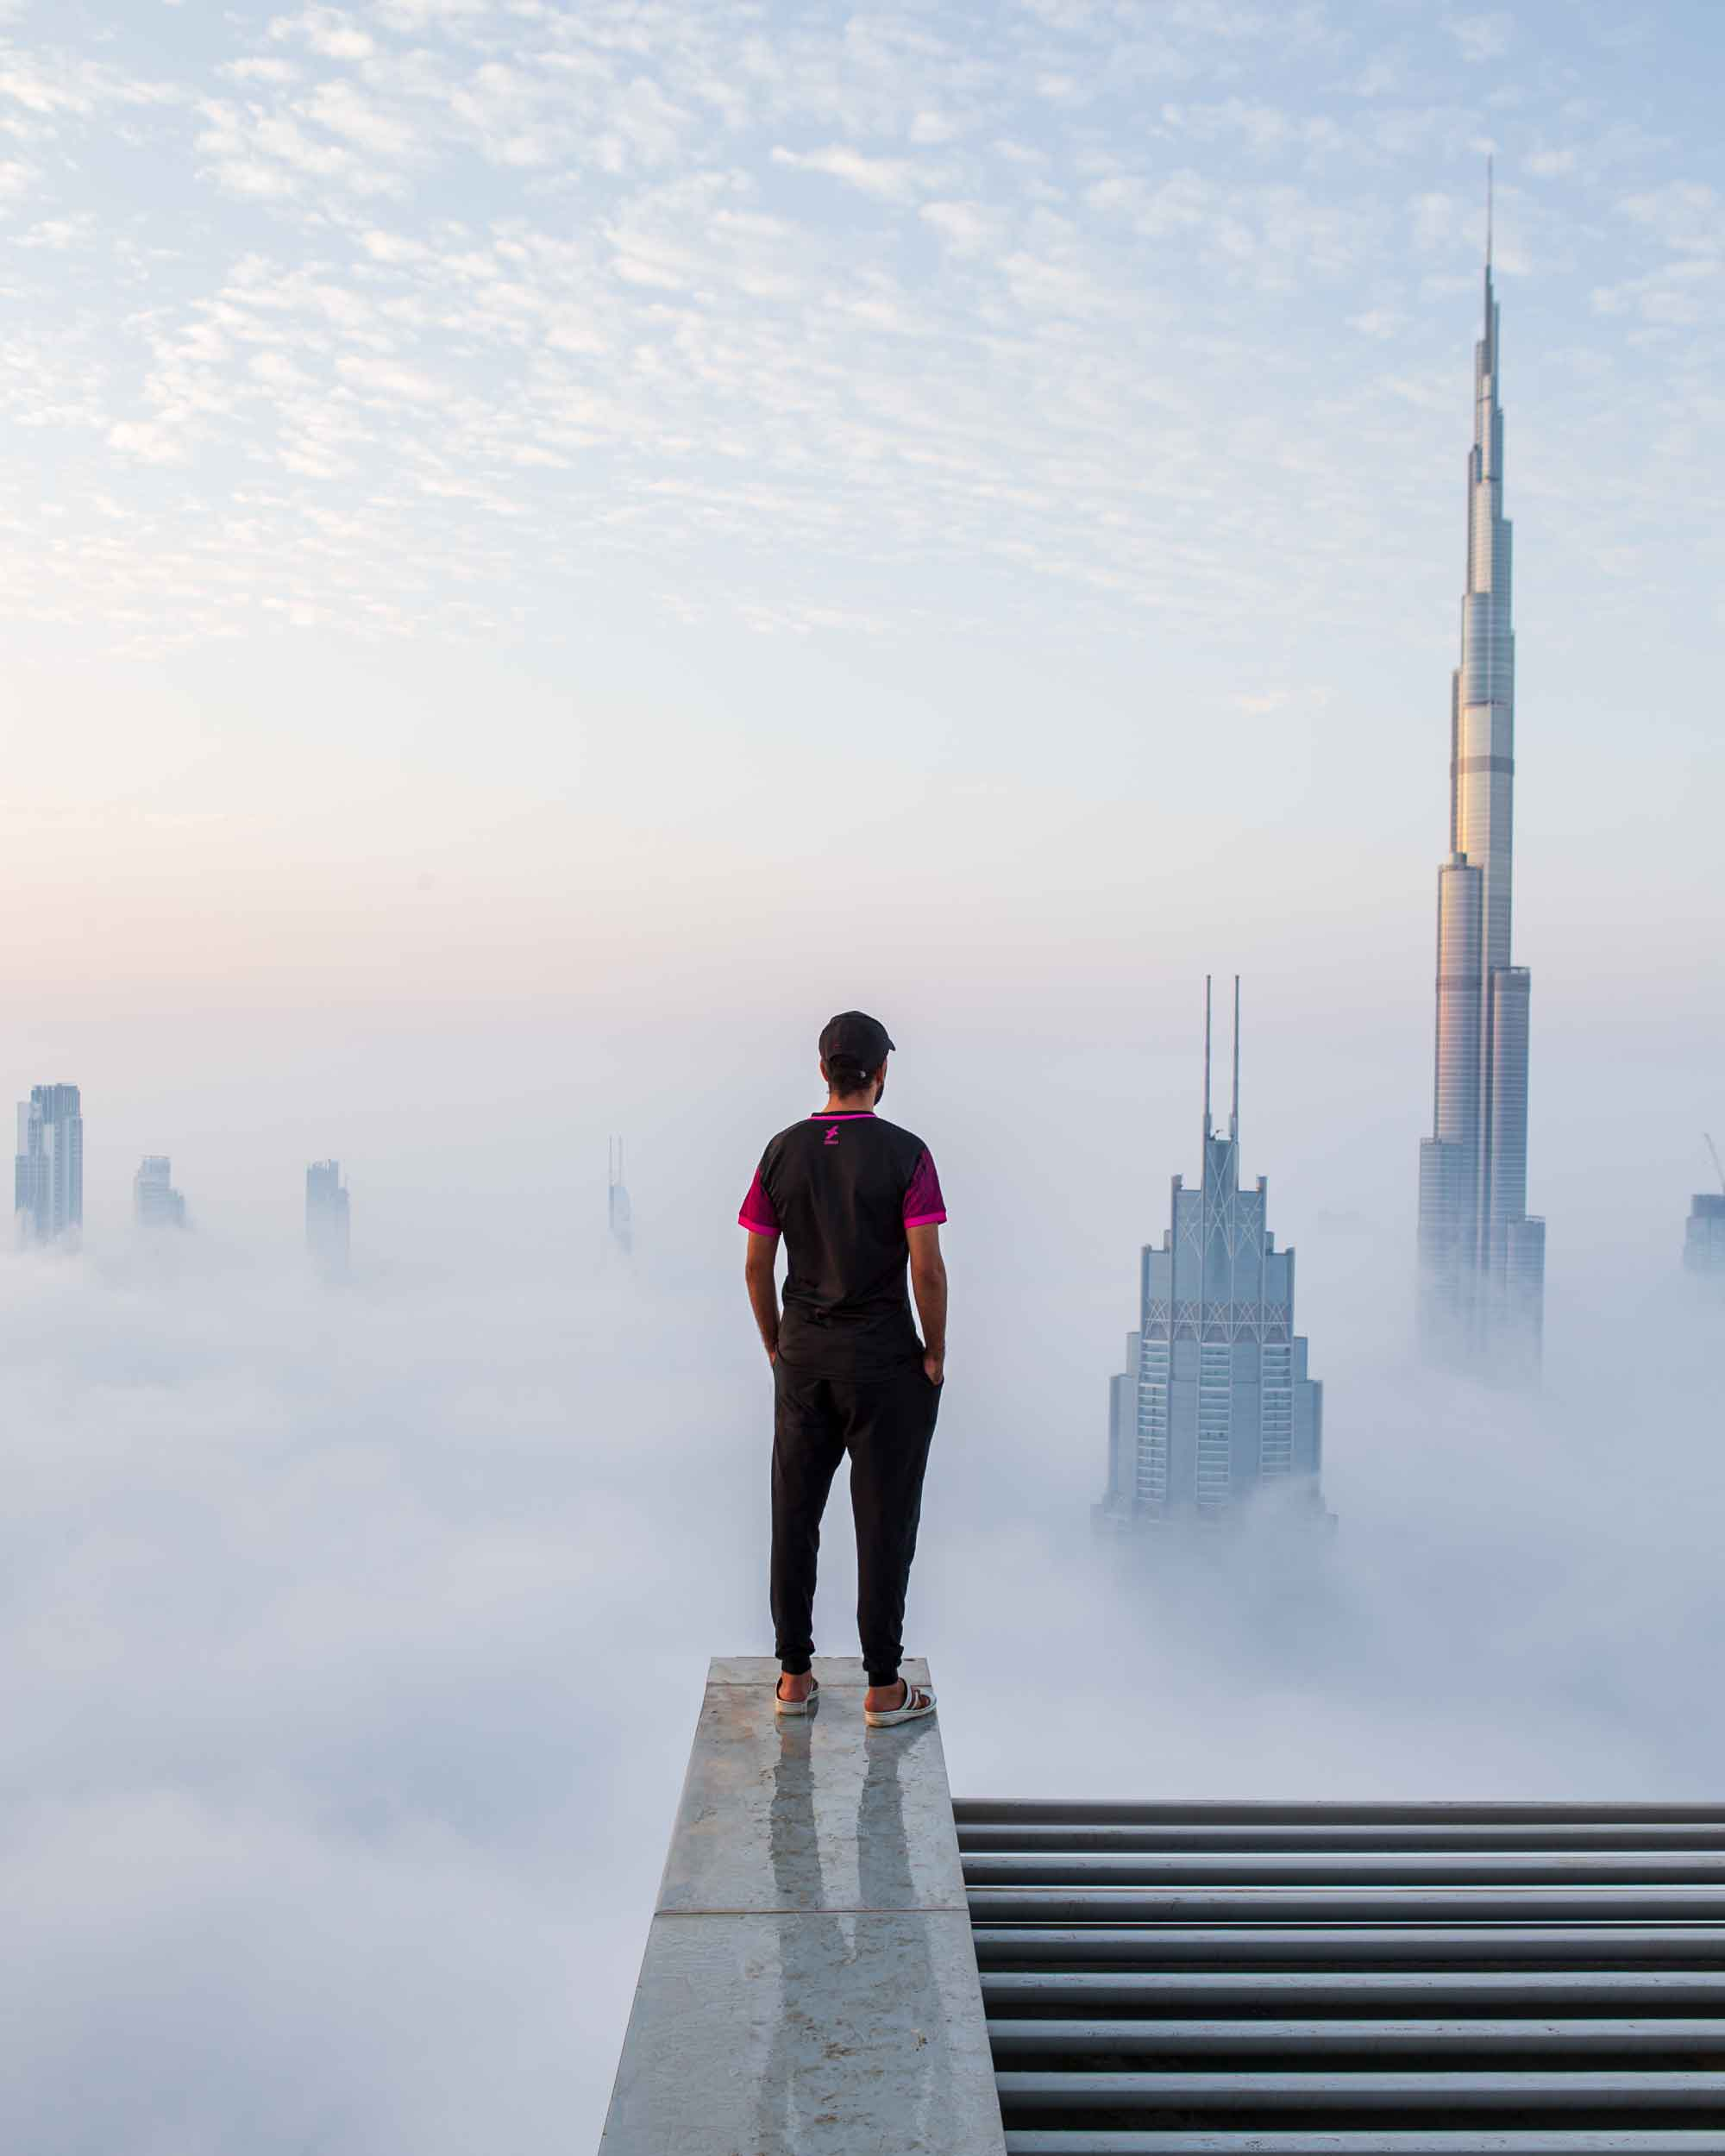 A man stands on top of an extremely high building, overlooking the skyscrapers of Dubai push their way through a thick white cloud.